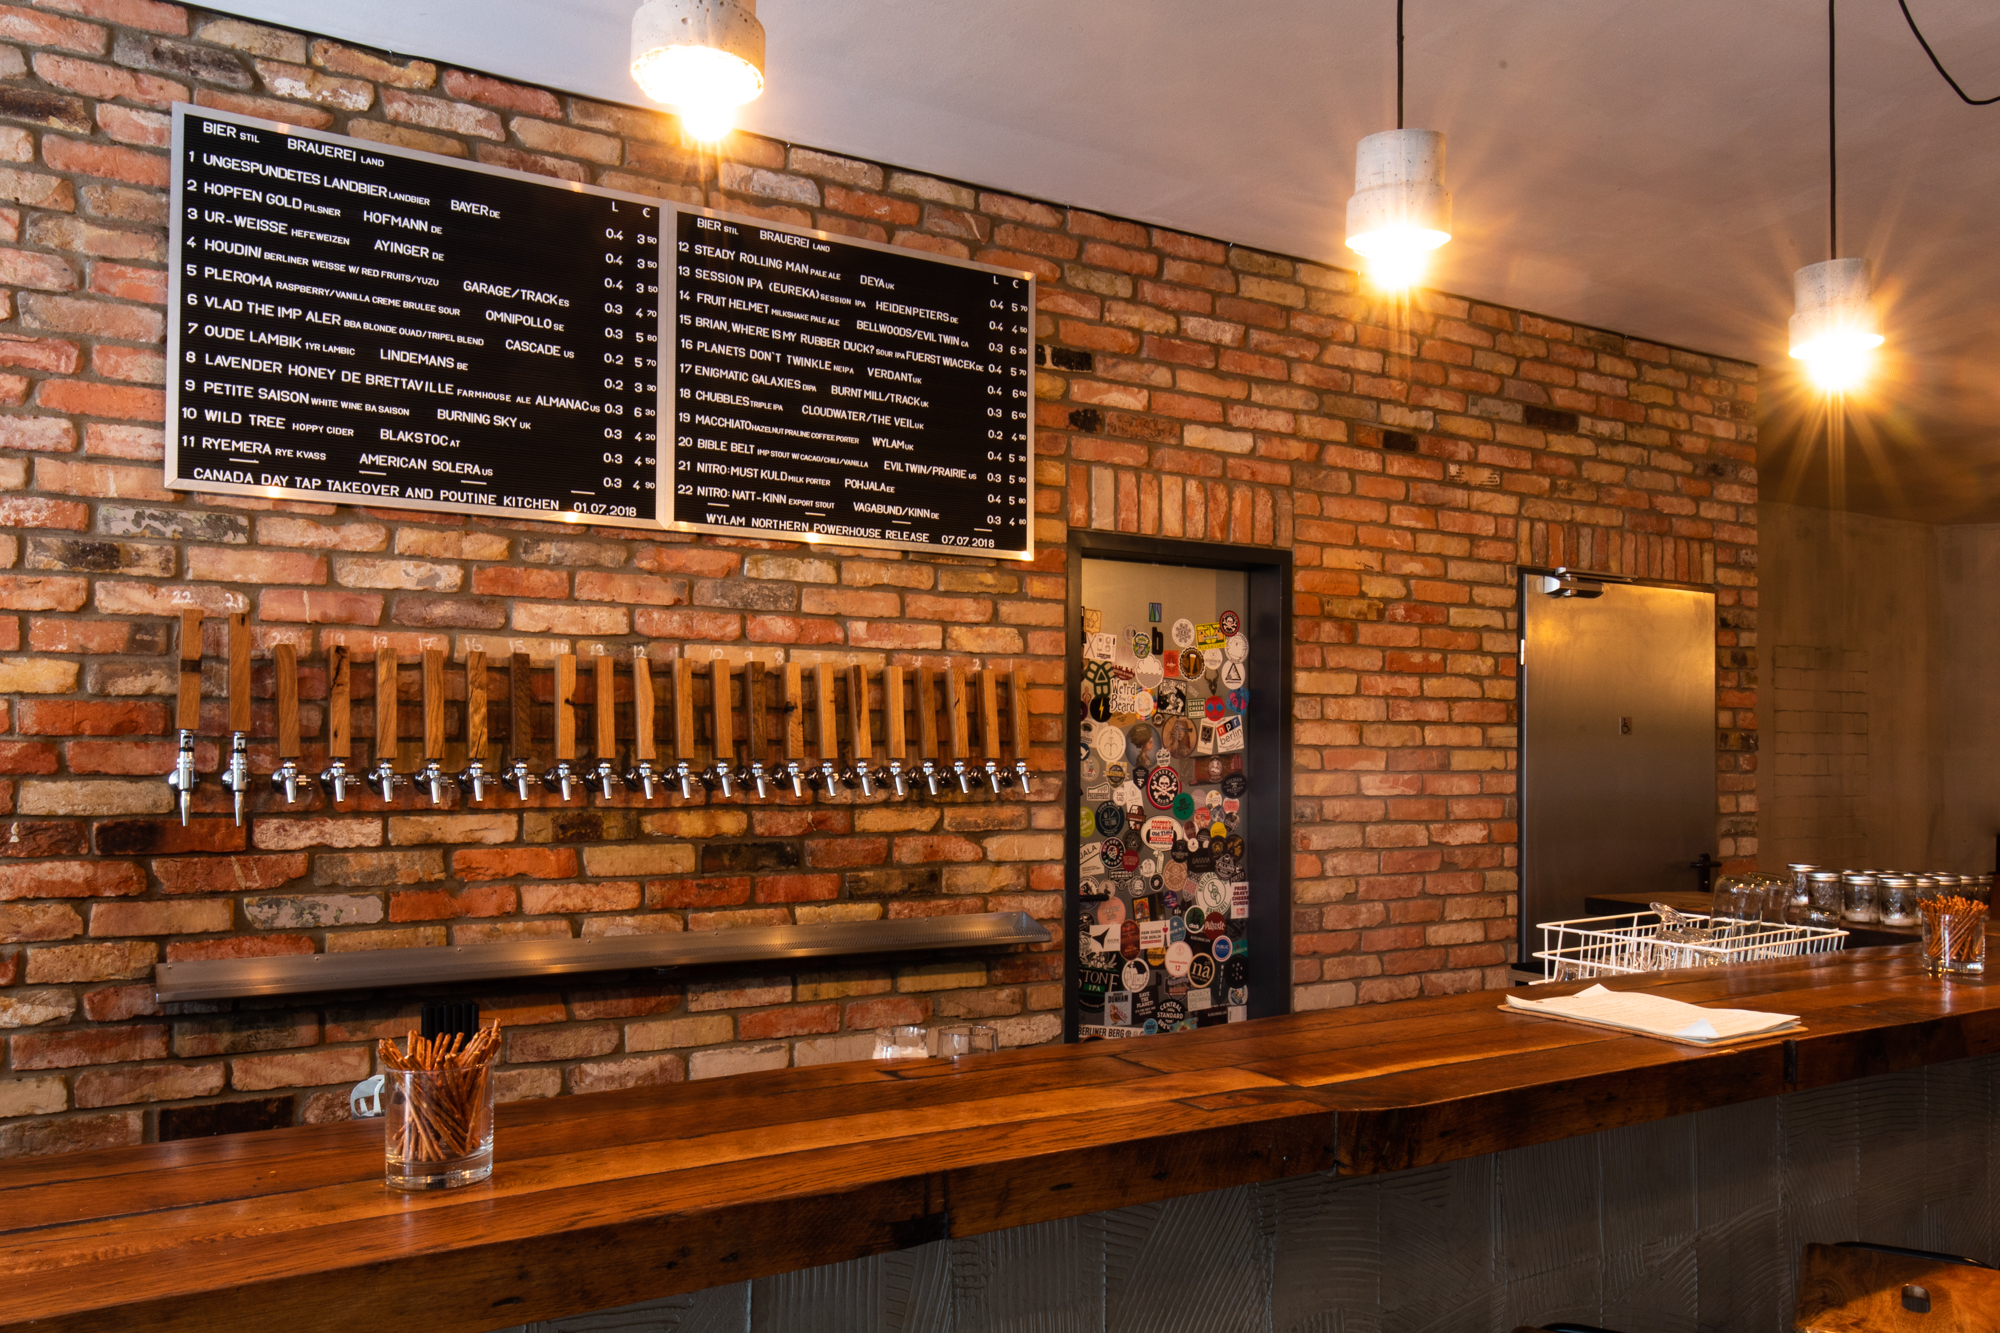 The Bar and Tap List at Muted Horn, a craft beer bar in Berlin Neukölln